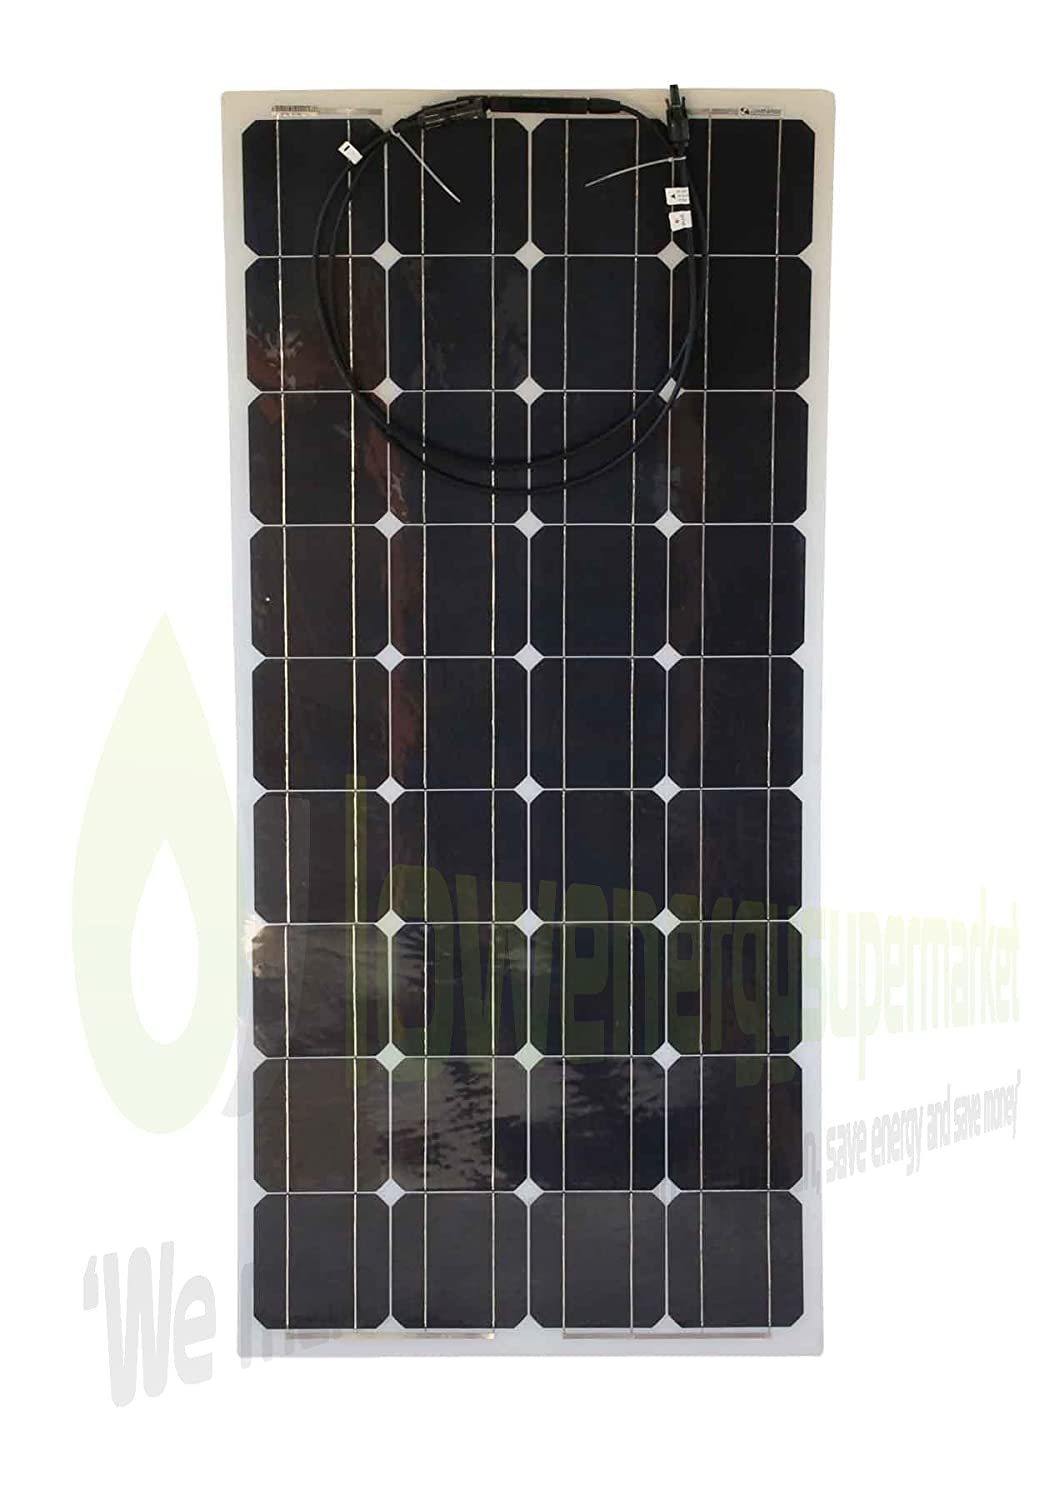 100W Flexible Solar Panel Premium Quality PV Photo-voltaic Panel. Ideal for Caravans, Boats, Gardens, Camping & Motorhomes. Lowenergie